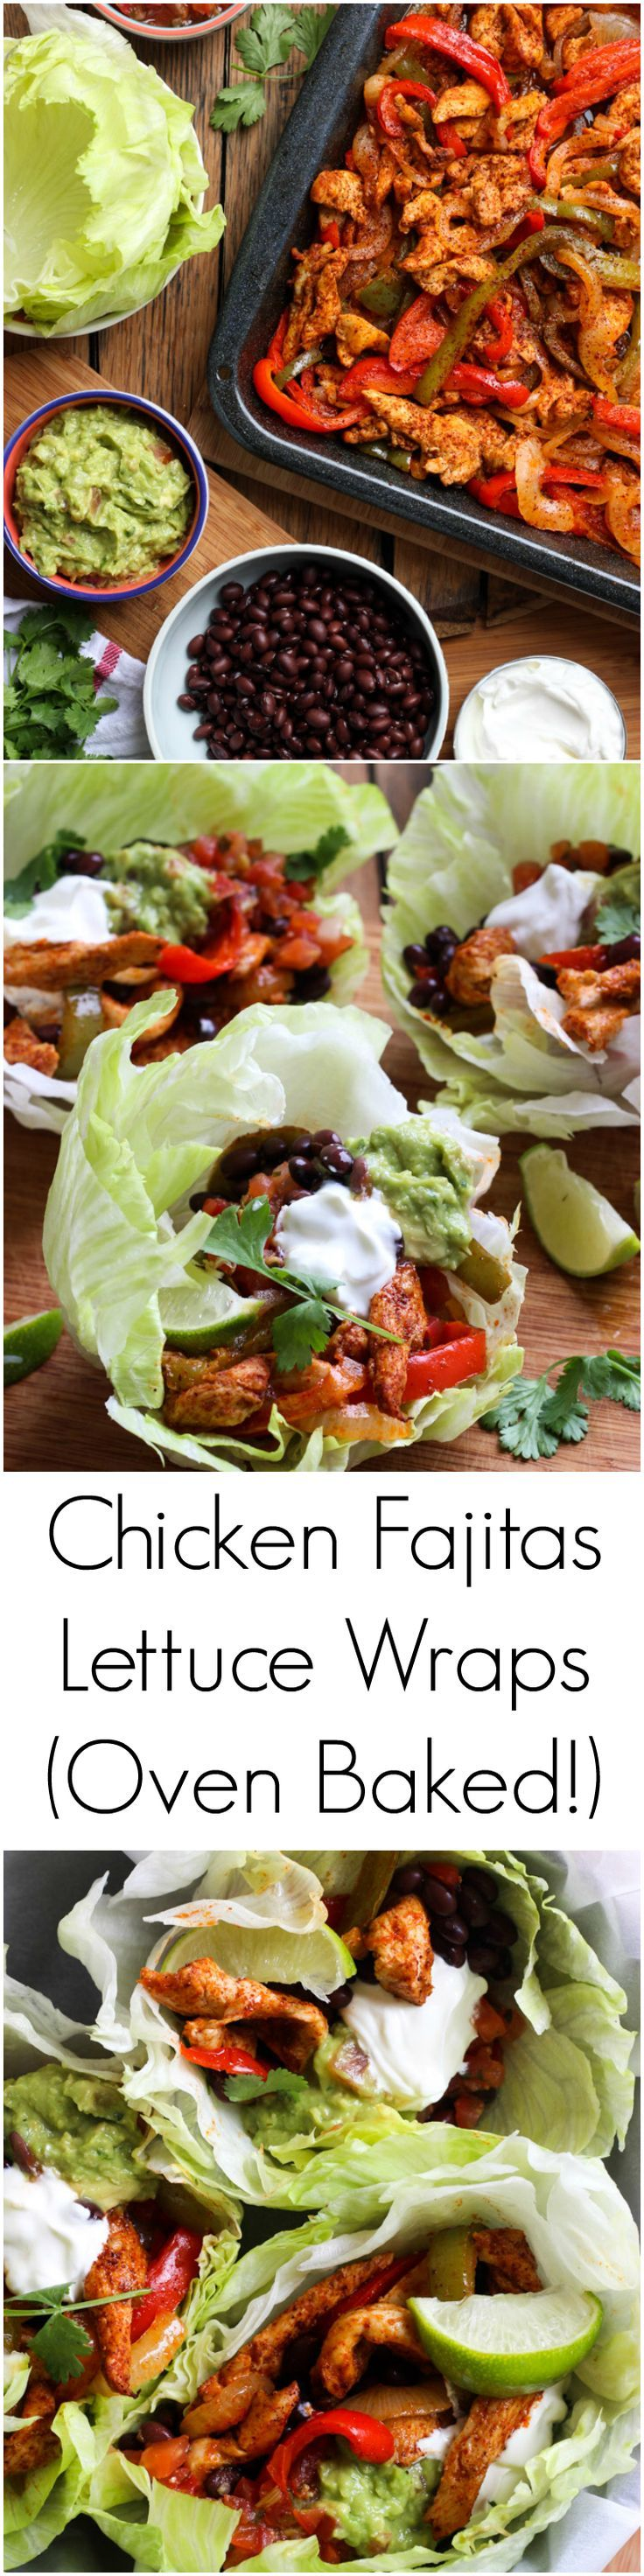 With one little trick and you have the most juiciest oven baked chicken fajitas! Served in a lettuce wrap for a healthy dinner | http://littlebroken.com /littlebroken/